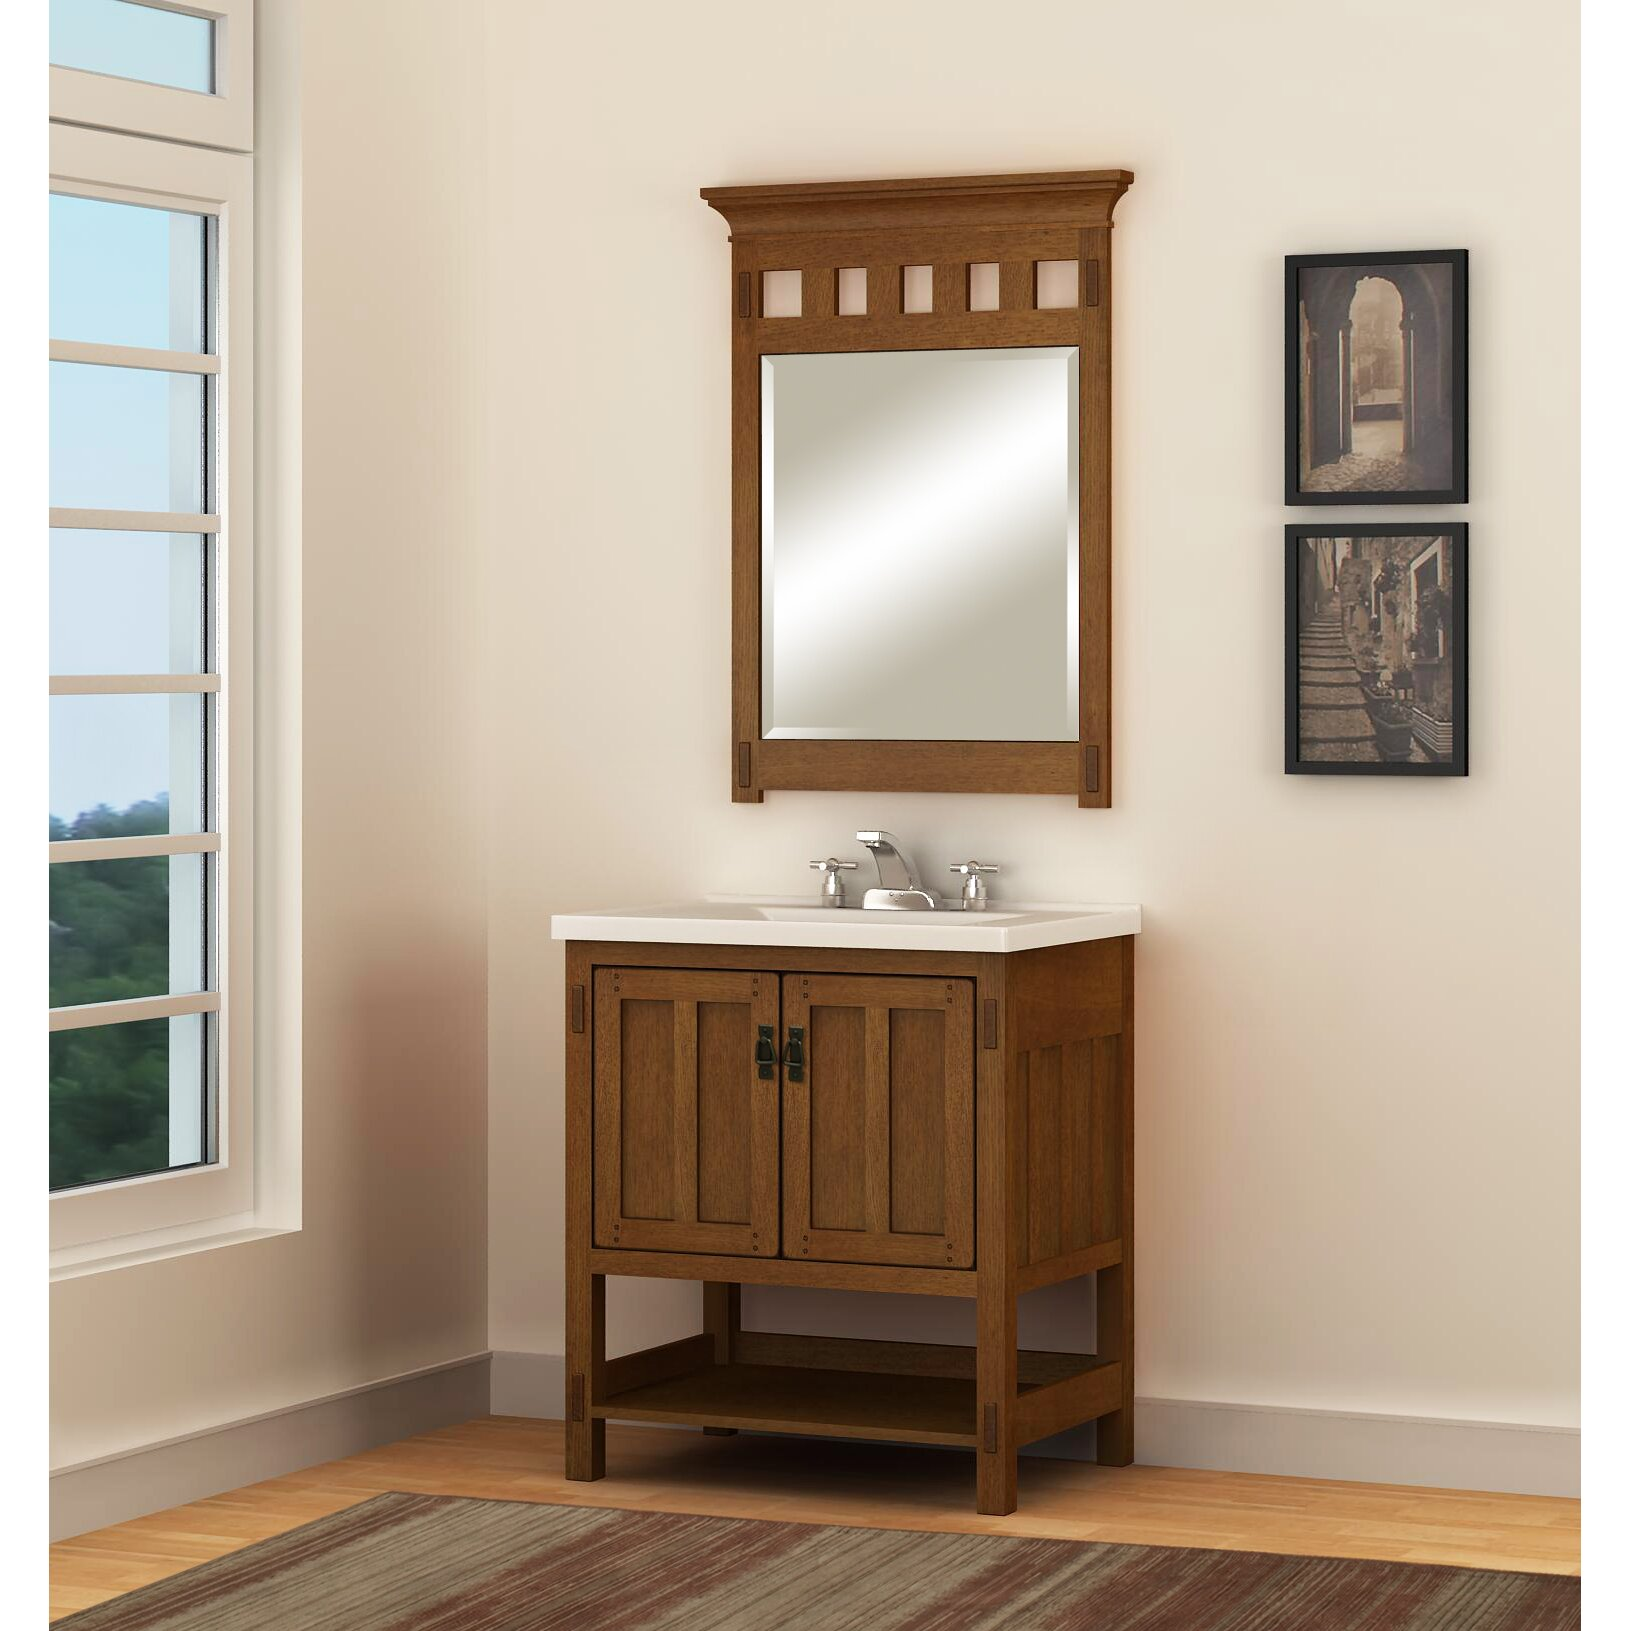 Sagehill premier 31 vanity top reviews wayfair Premiere bathroom design reviews